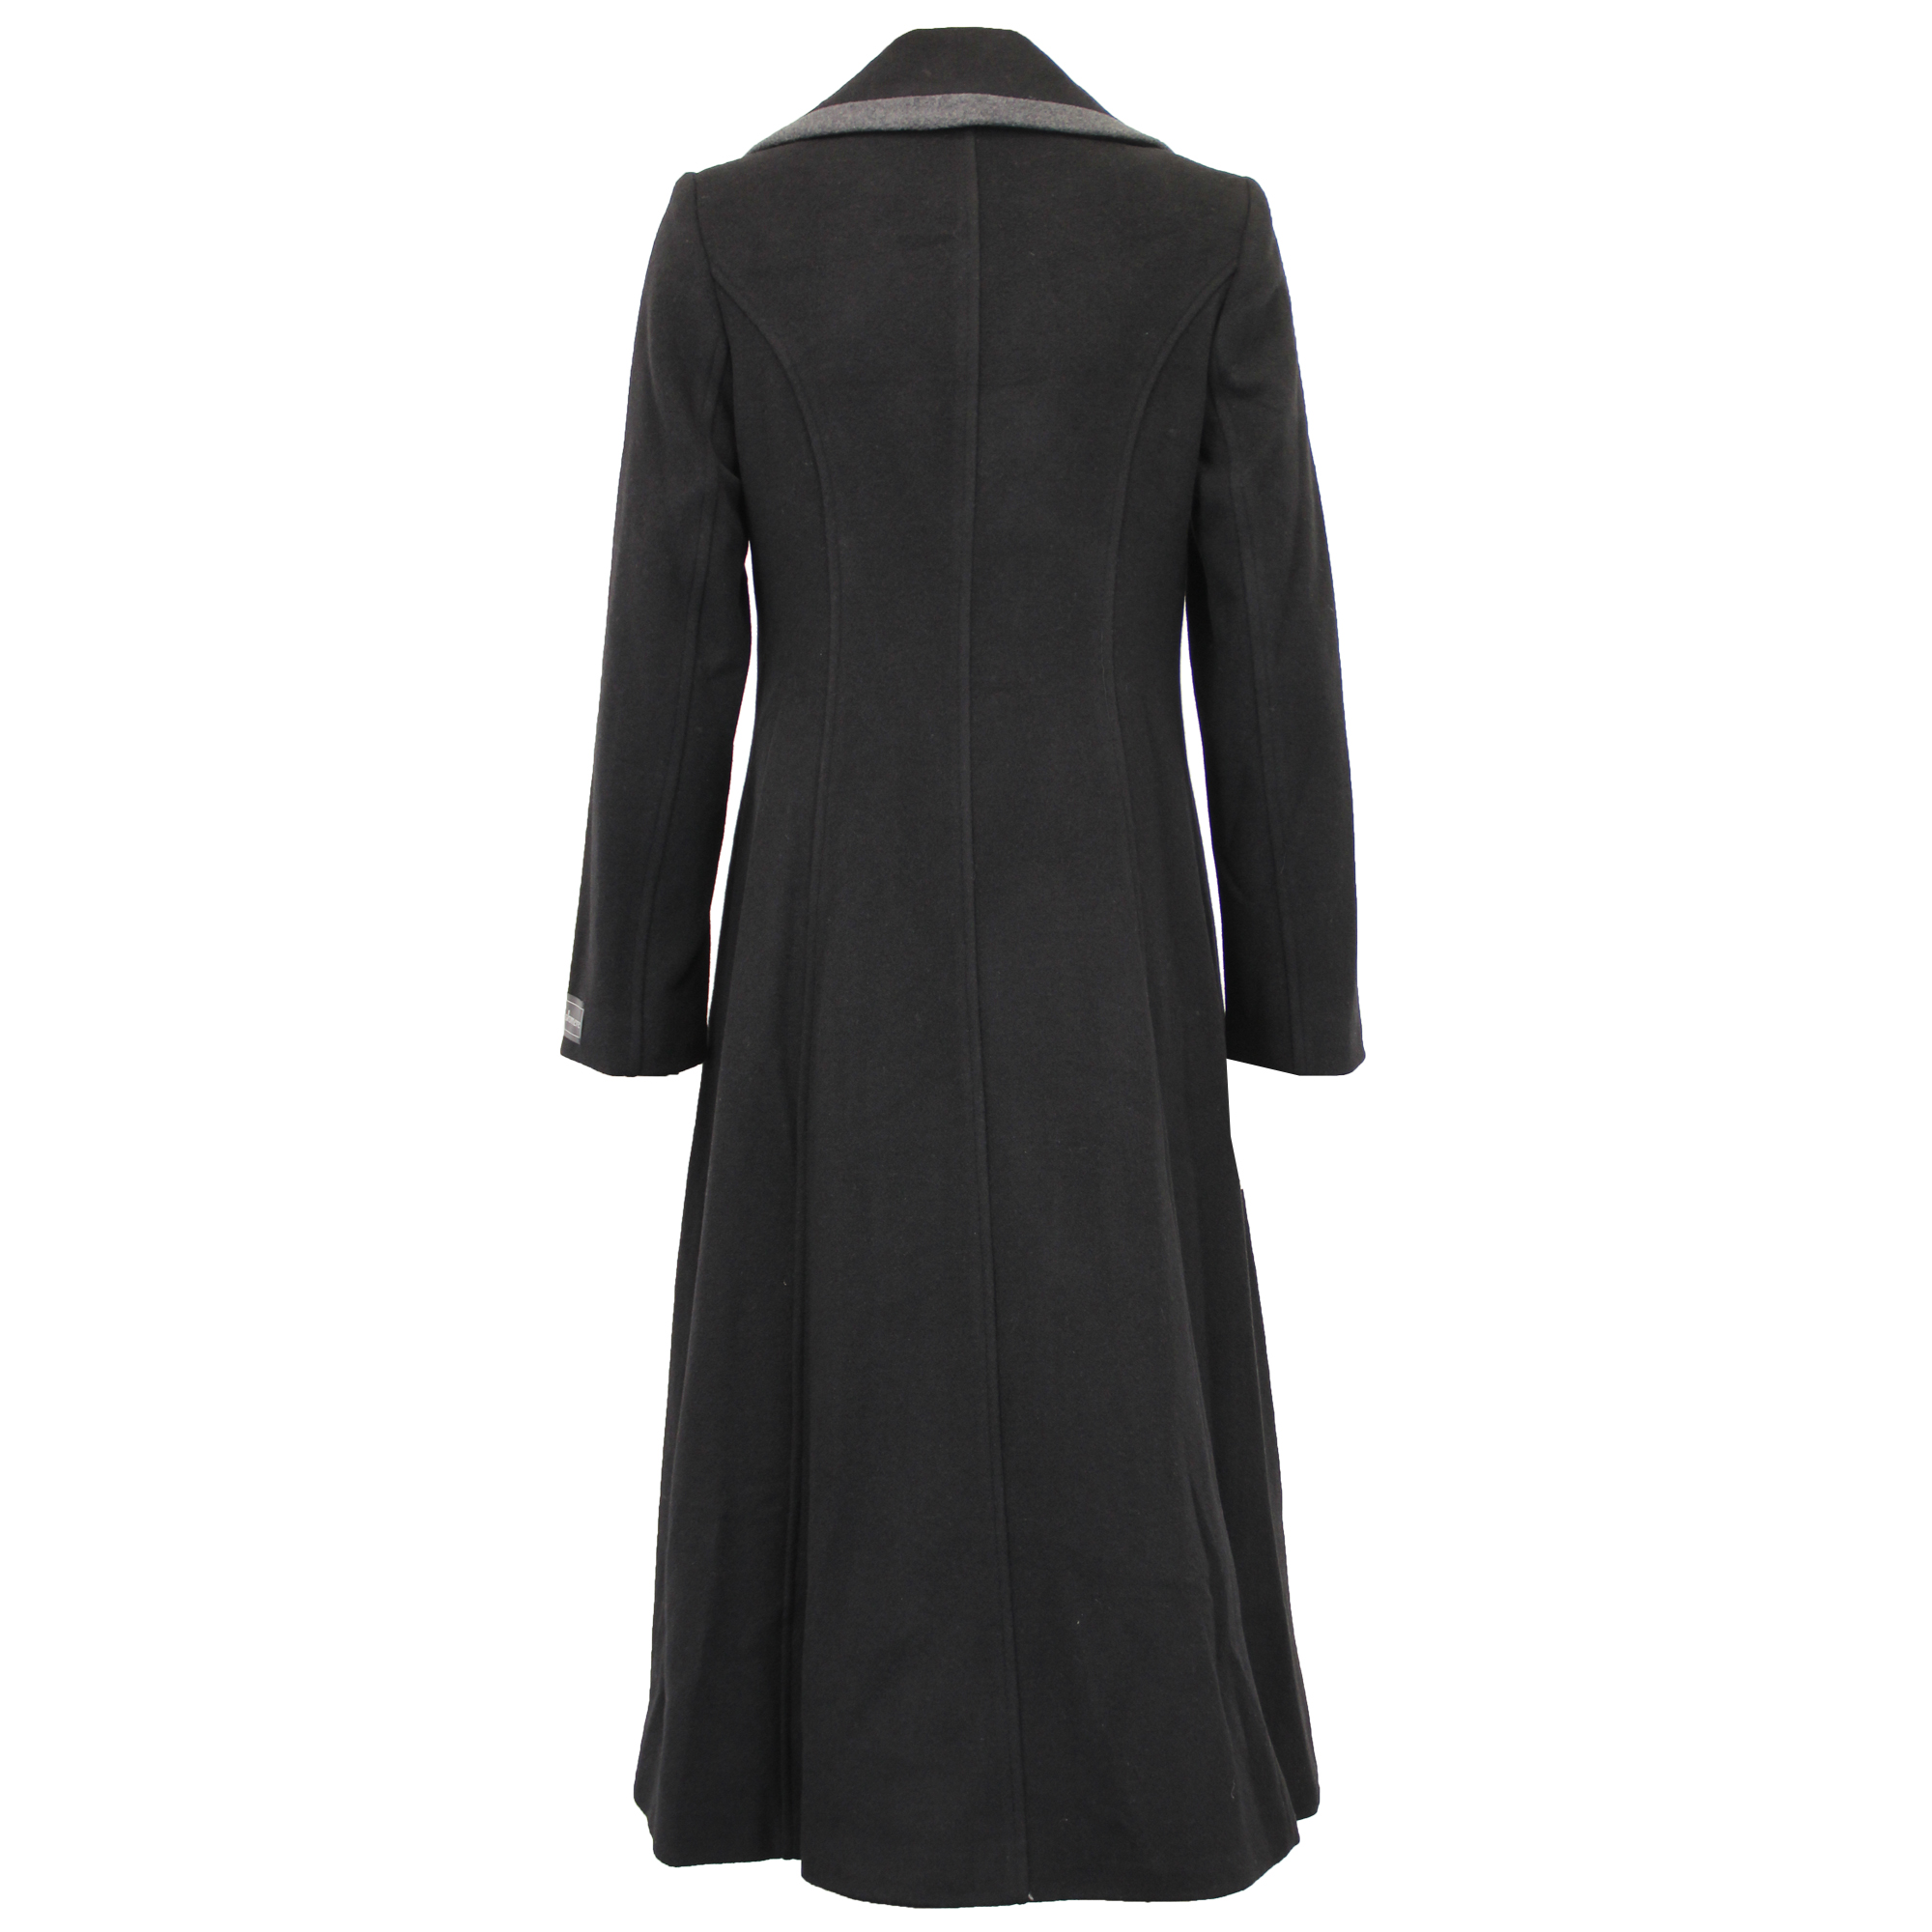 Ladies-Wool-Cashmere-Coat-Women-Jacket-Outerwear-Trench-Overcoat-Winter-Lined thumbnail 11